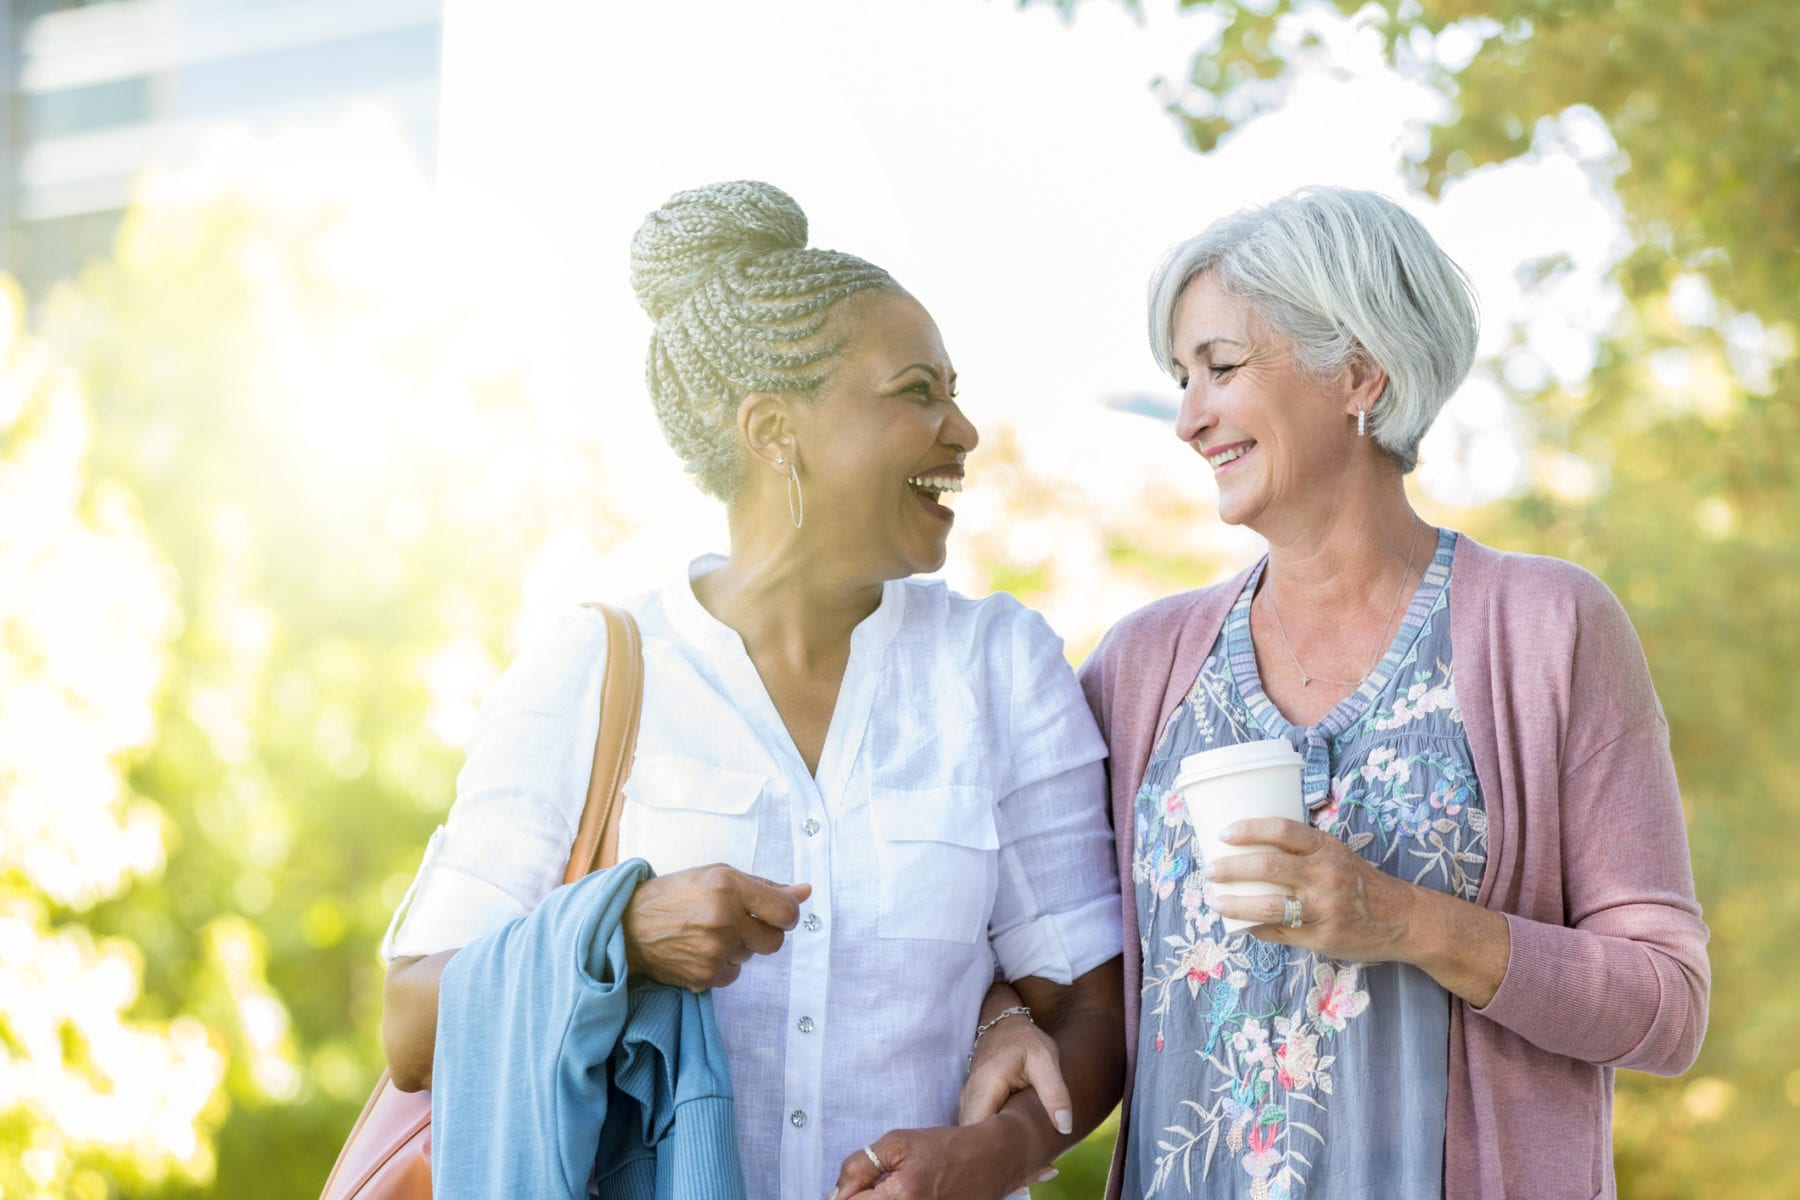 Two senior women walk arm in arm in a city park. One carries coffee as they look at each other and laugh.